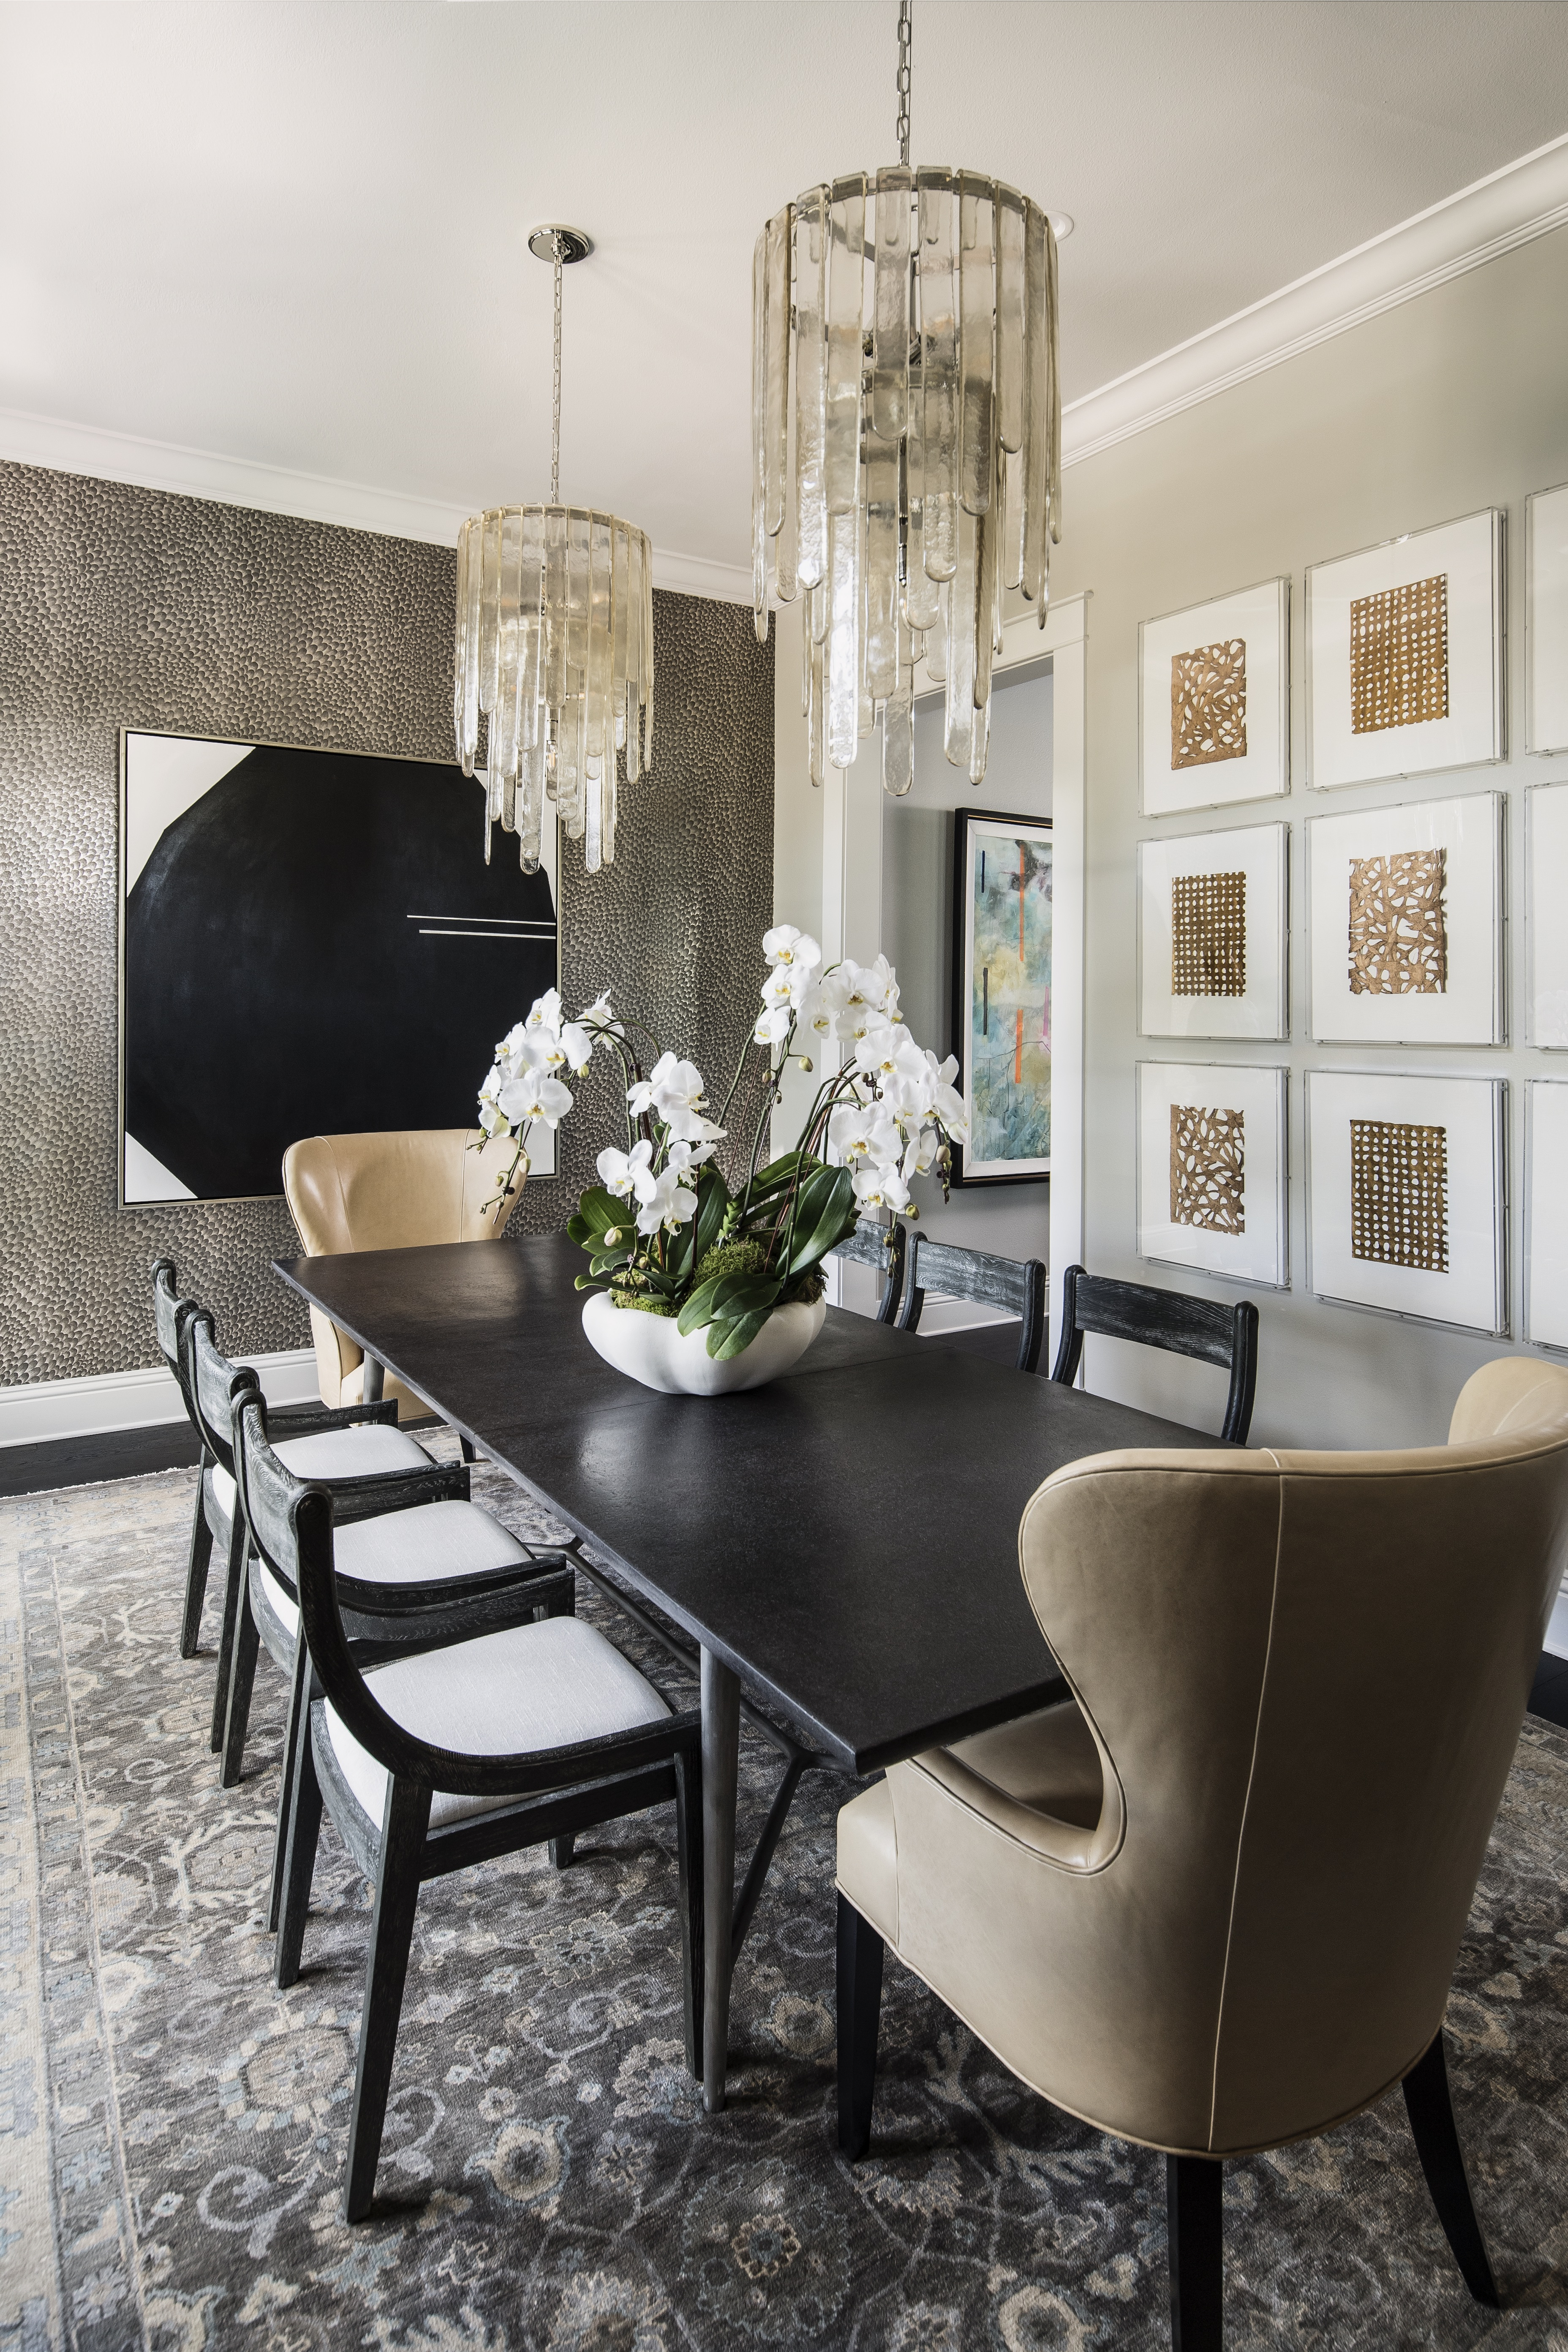 Lake Sybelia dining room by Brianna Michelle Design